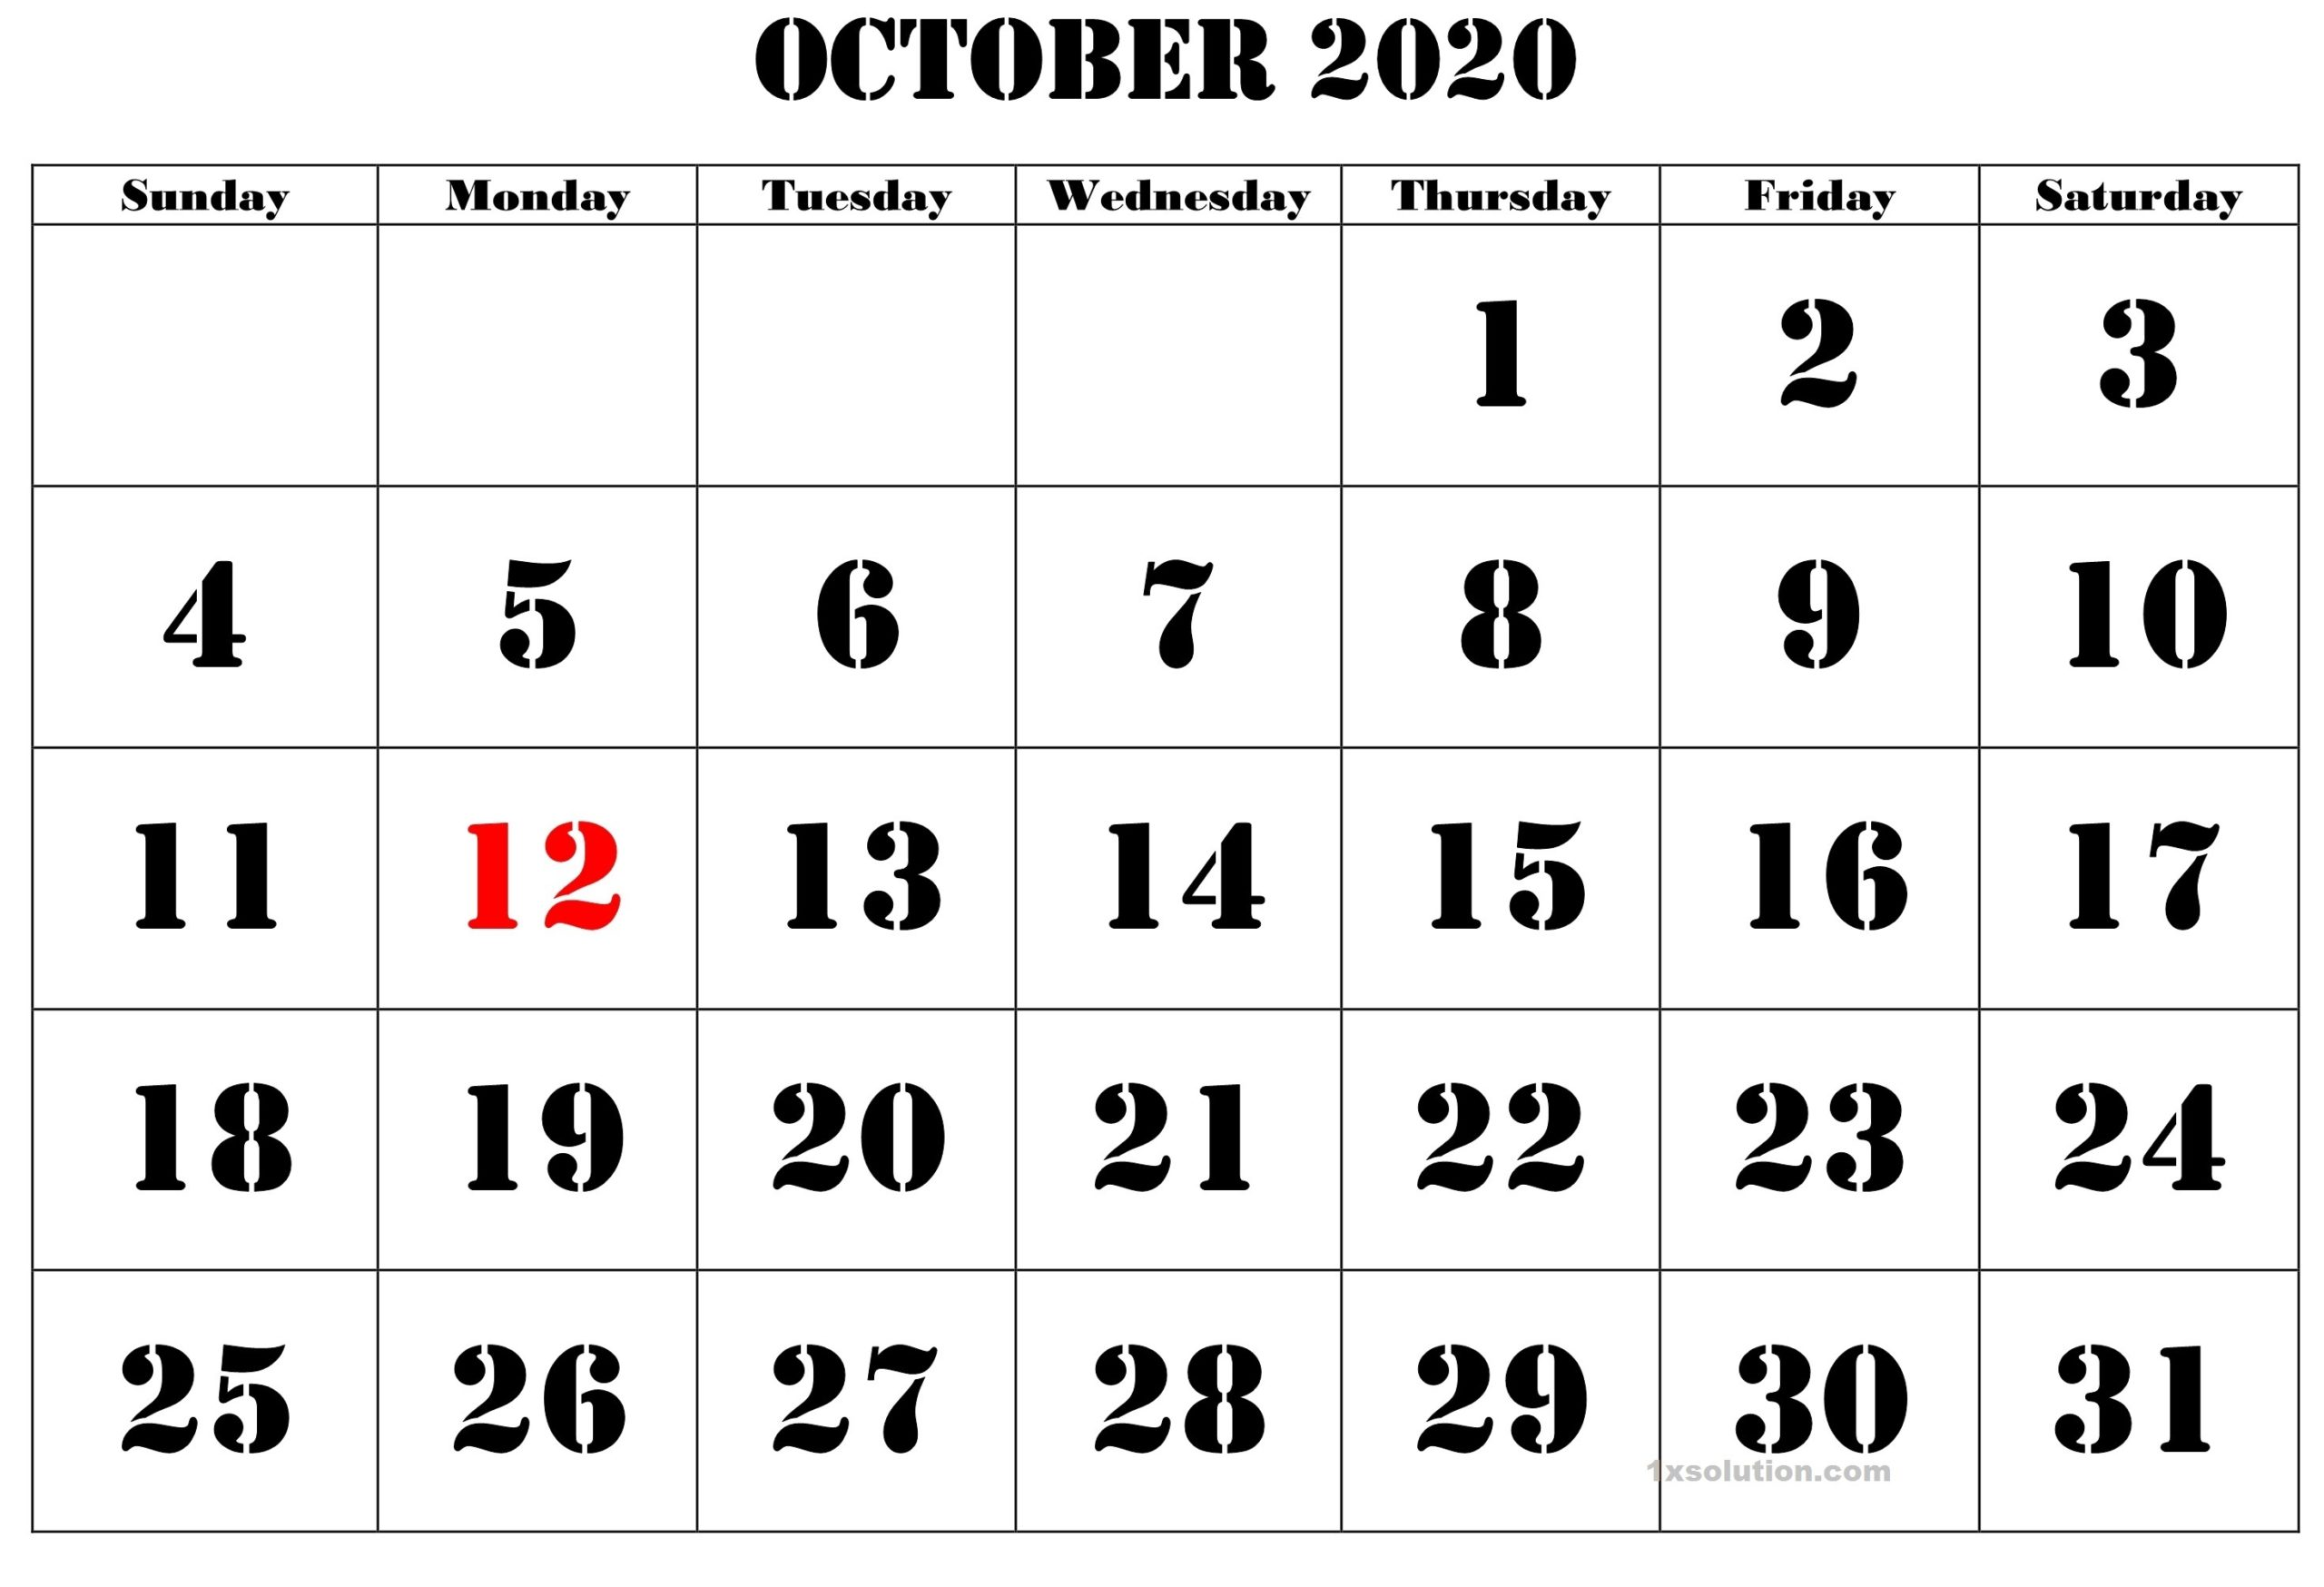 October 2020 Calendar PDF With Holidays